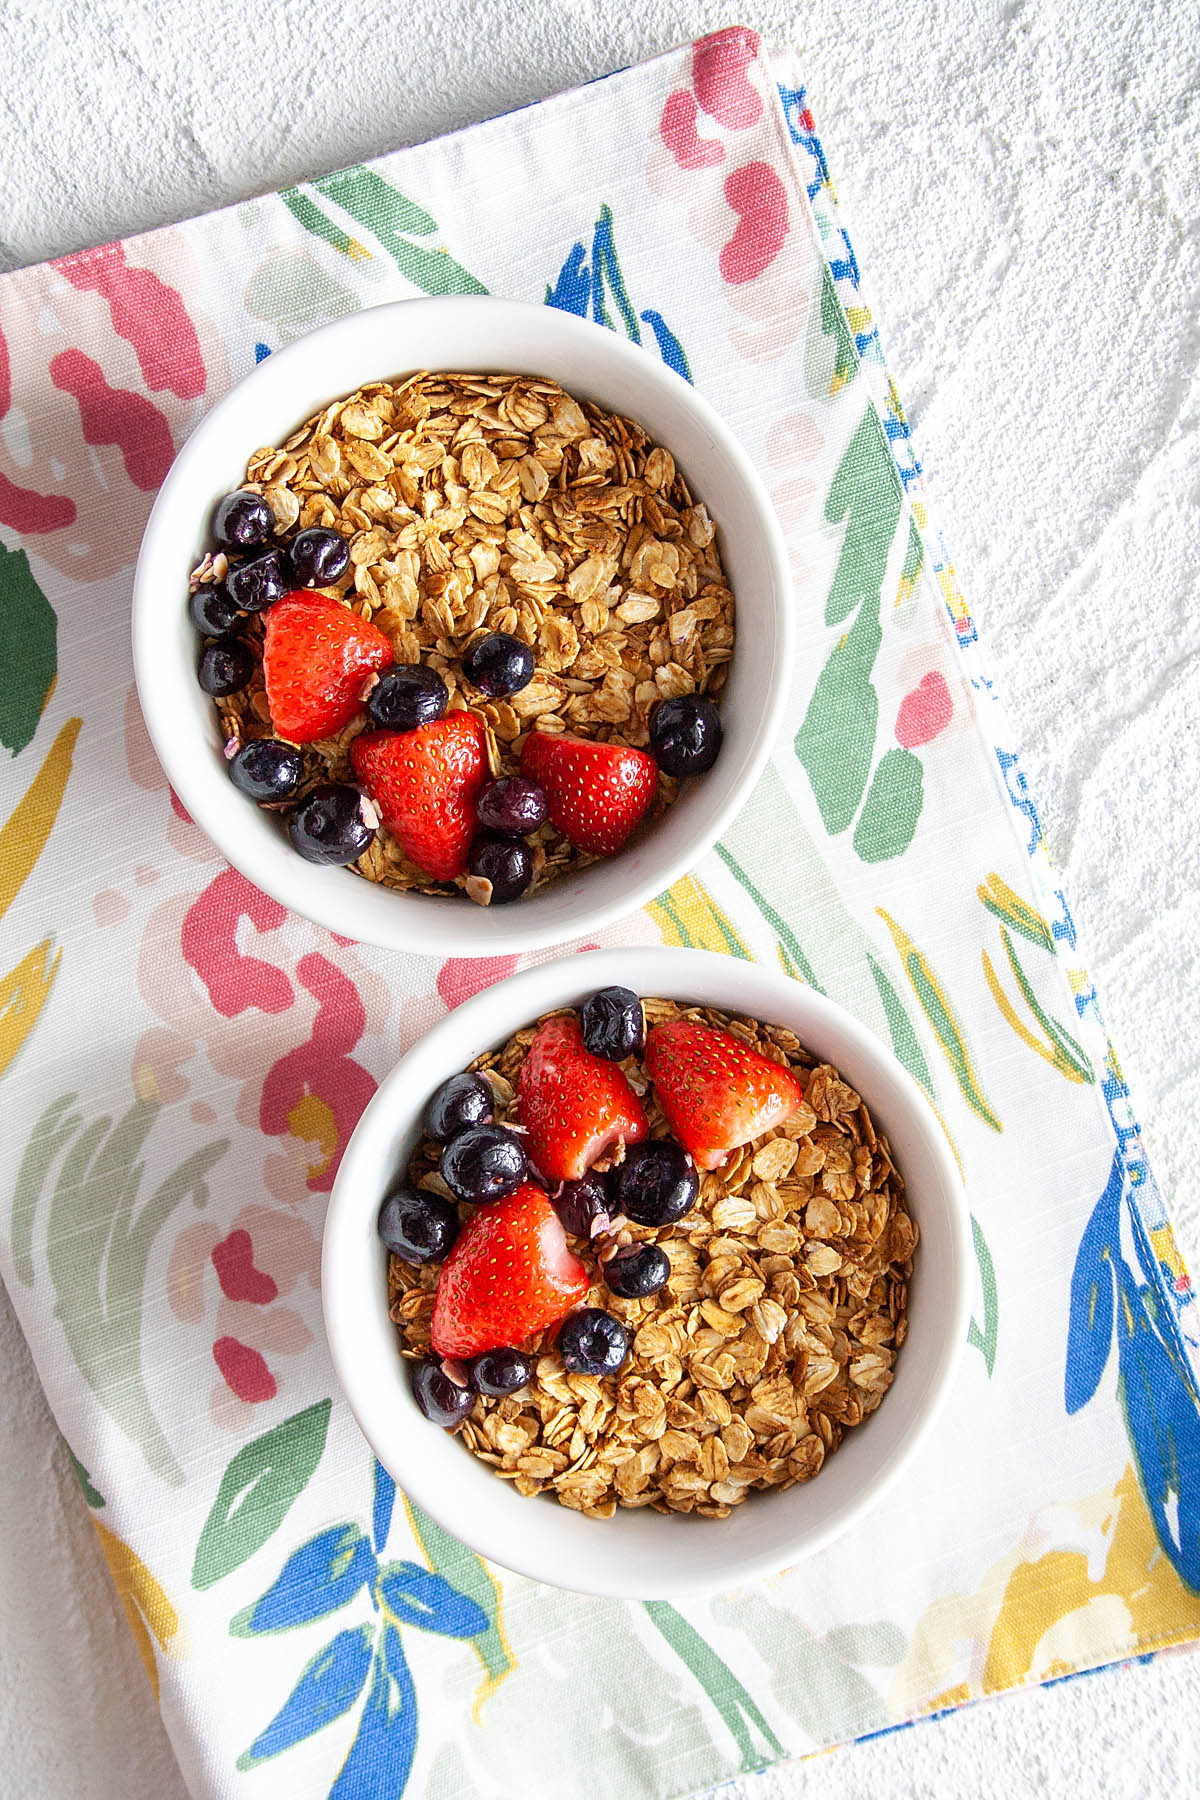 Maple and Molasses Granola in two bowls bird's eye view.